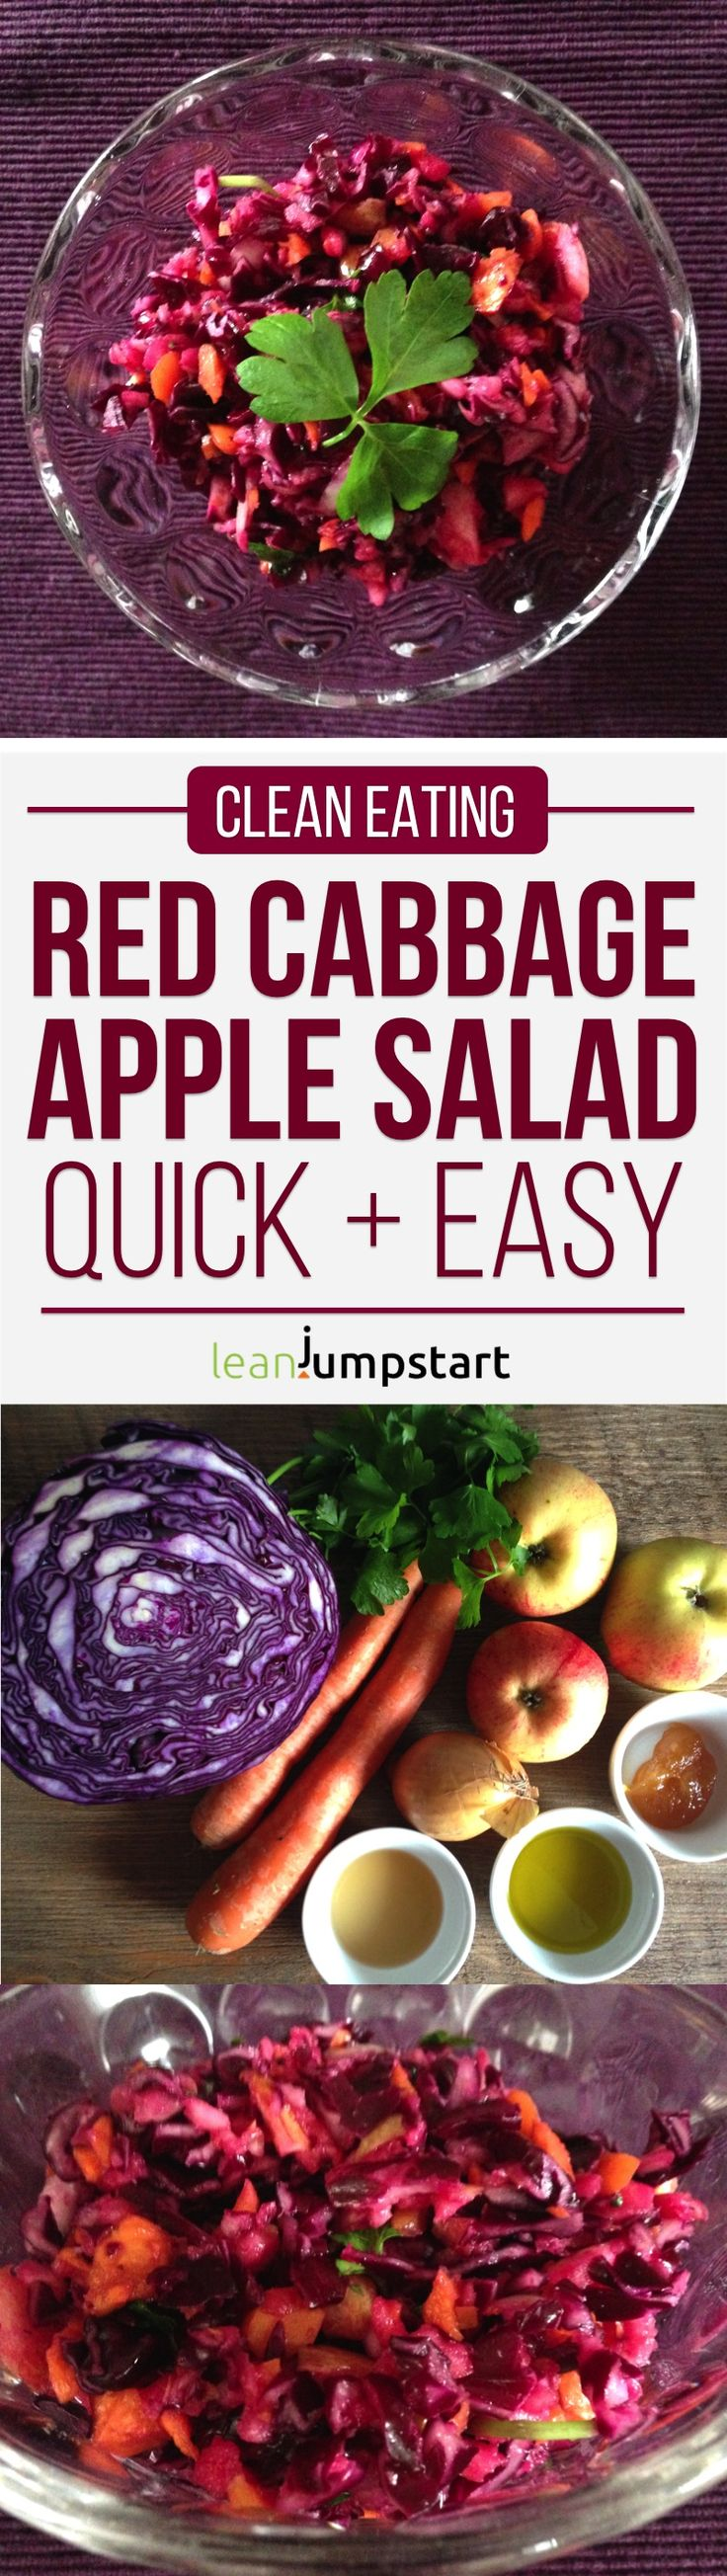 Clean Eating Red Cabbage Salad Recipe With Apples – Quick & Easy